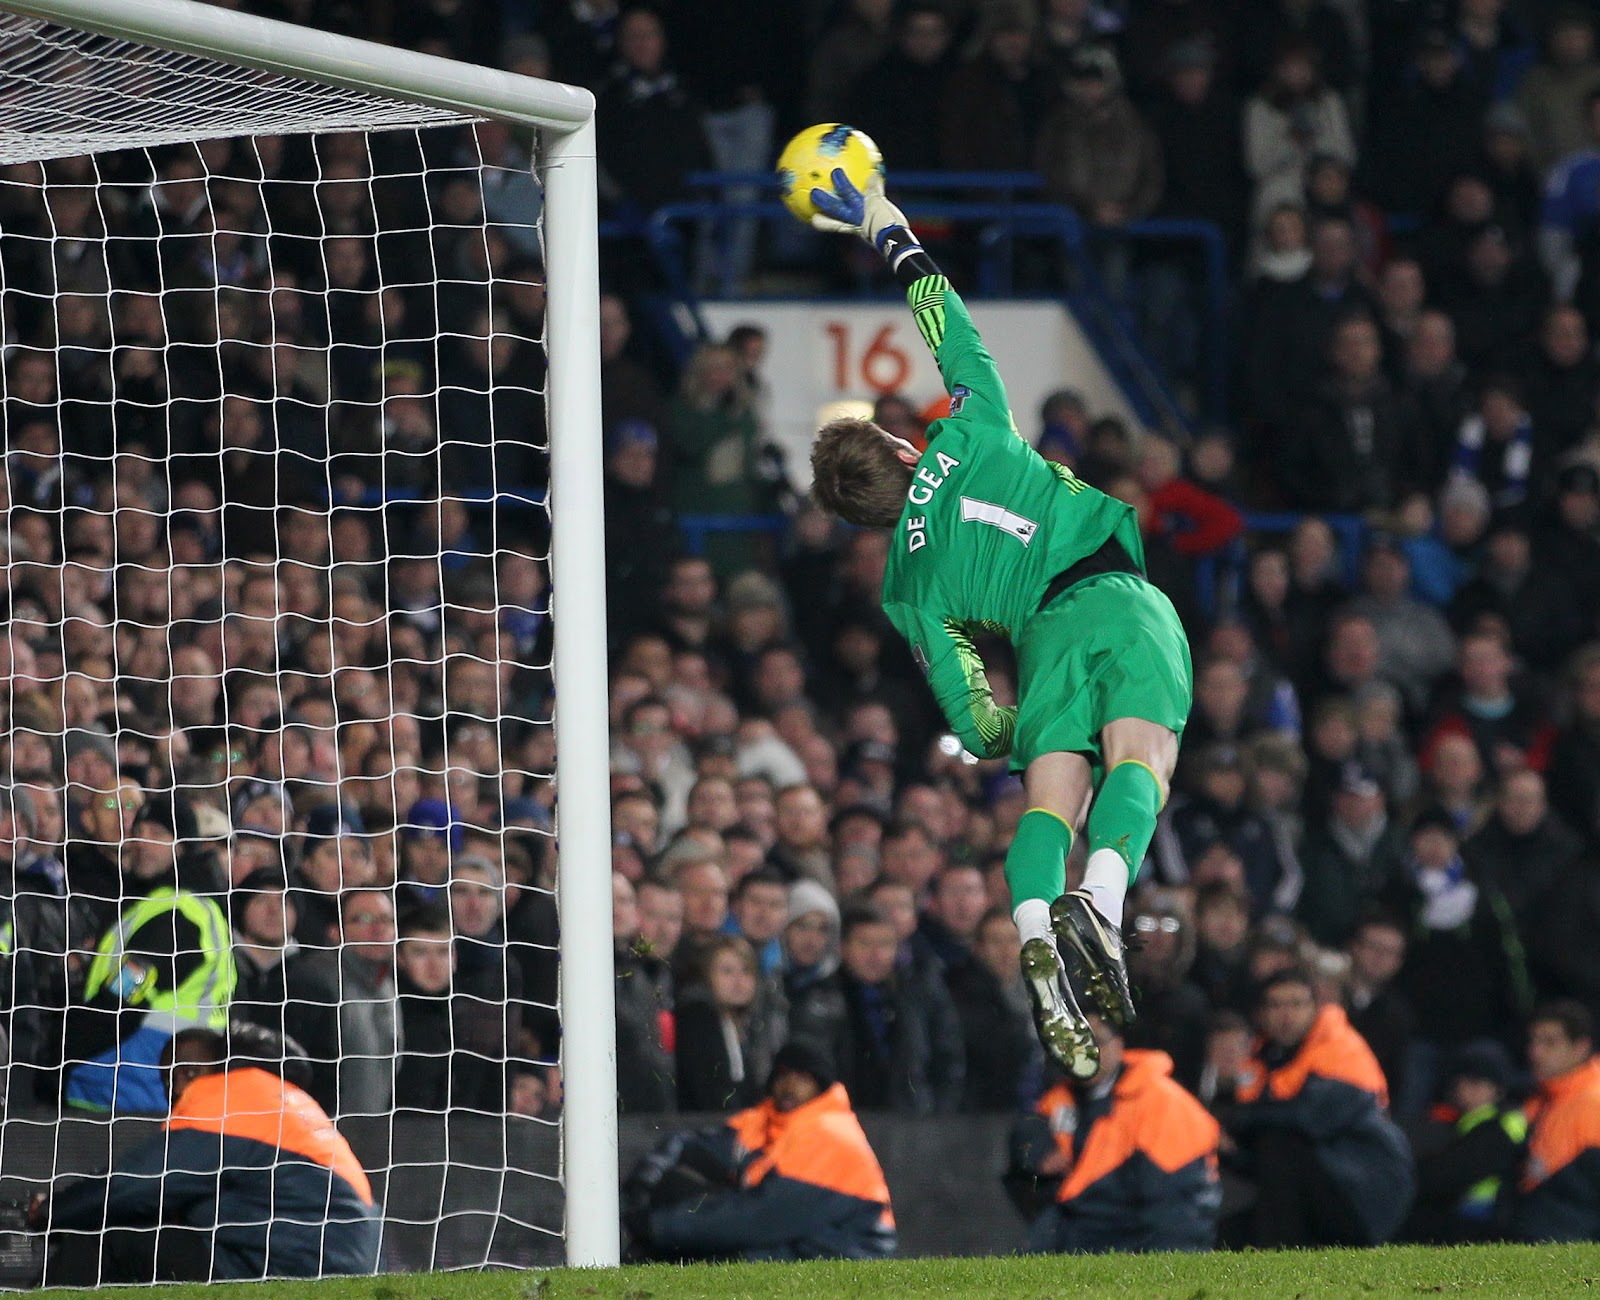 Hd David De Gea Beautiful Jump Saving Goal Mobile Free Desktop Images